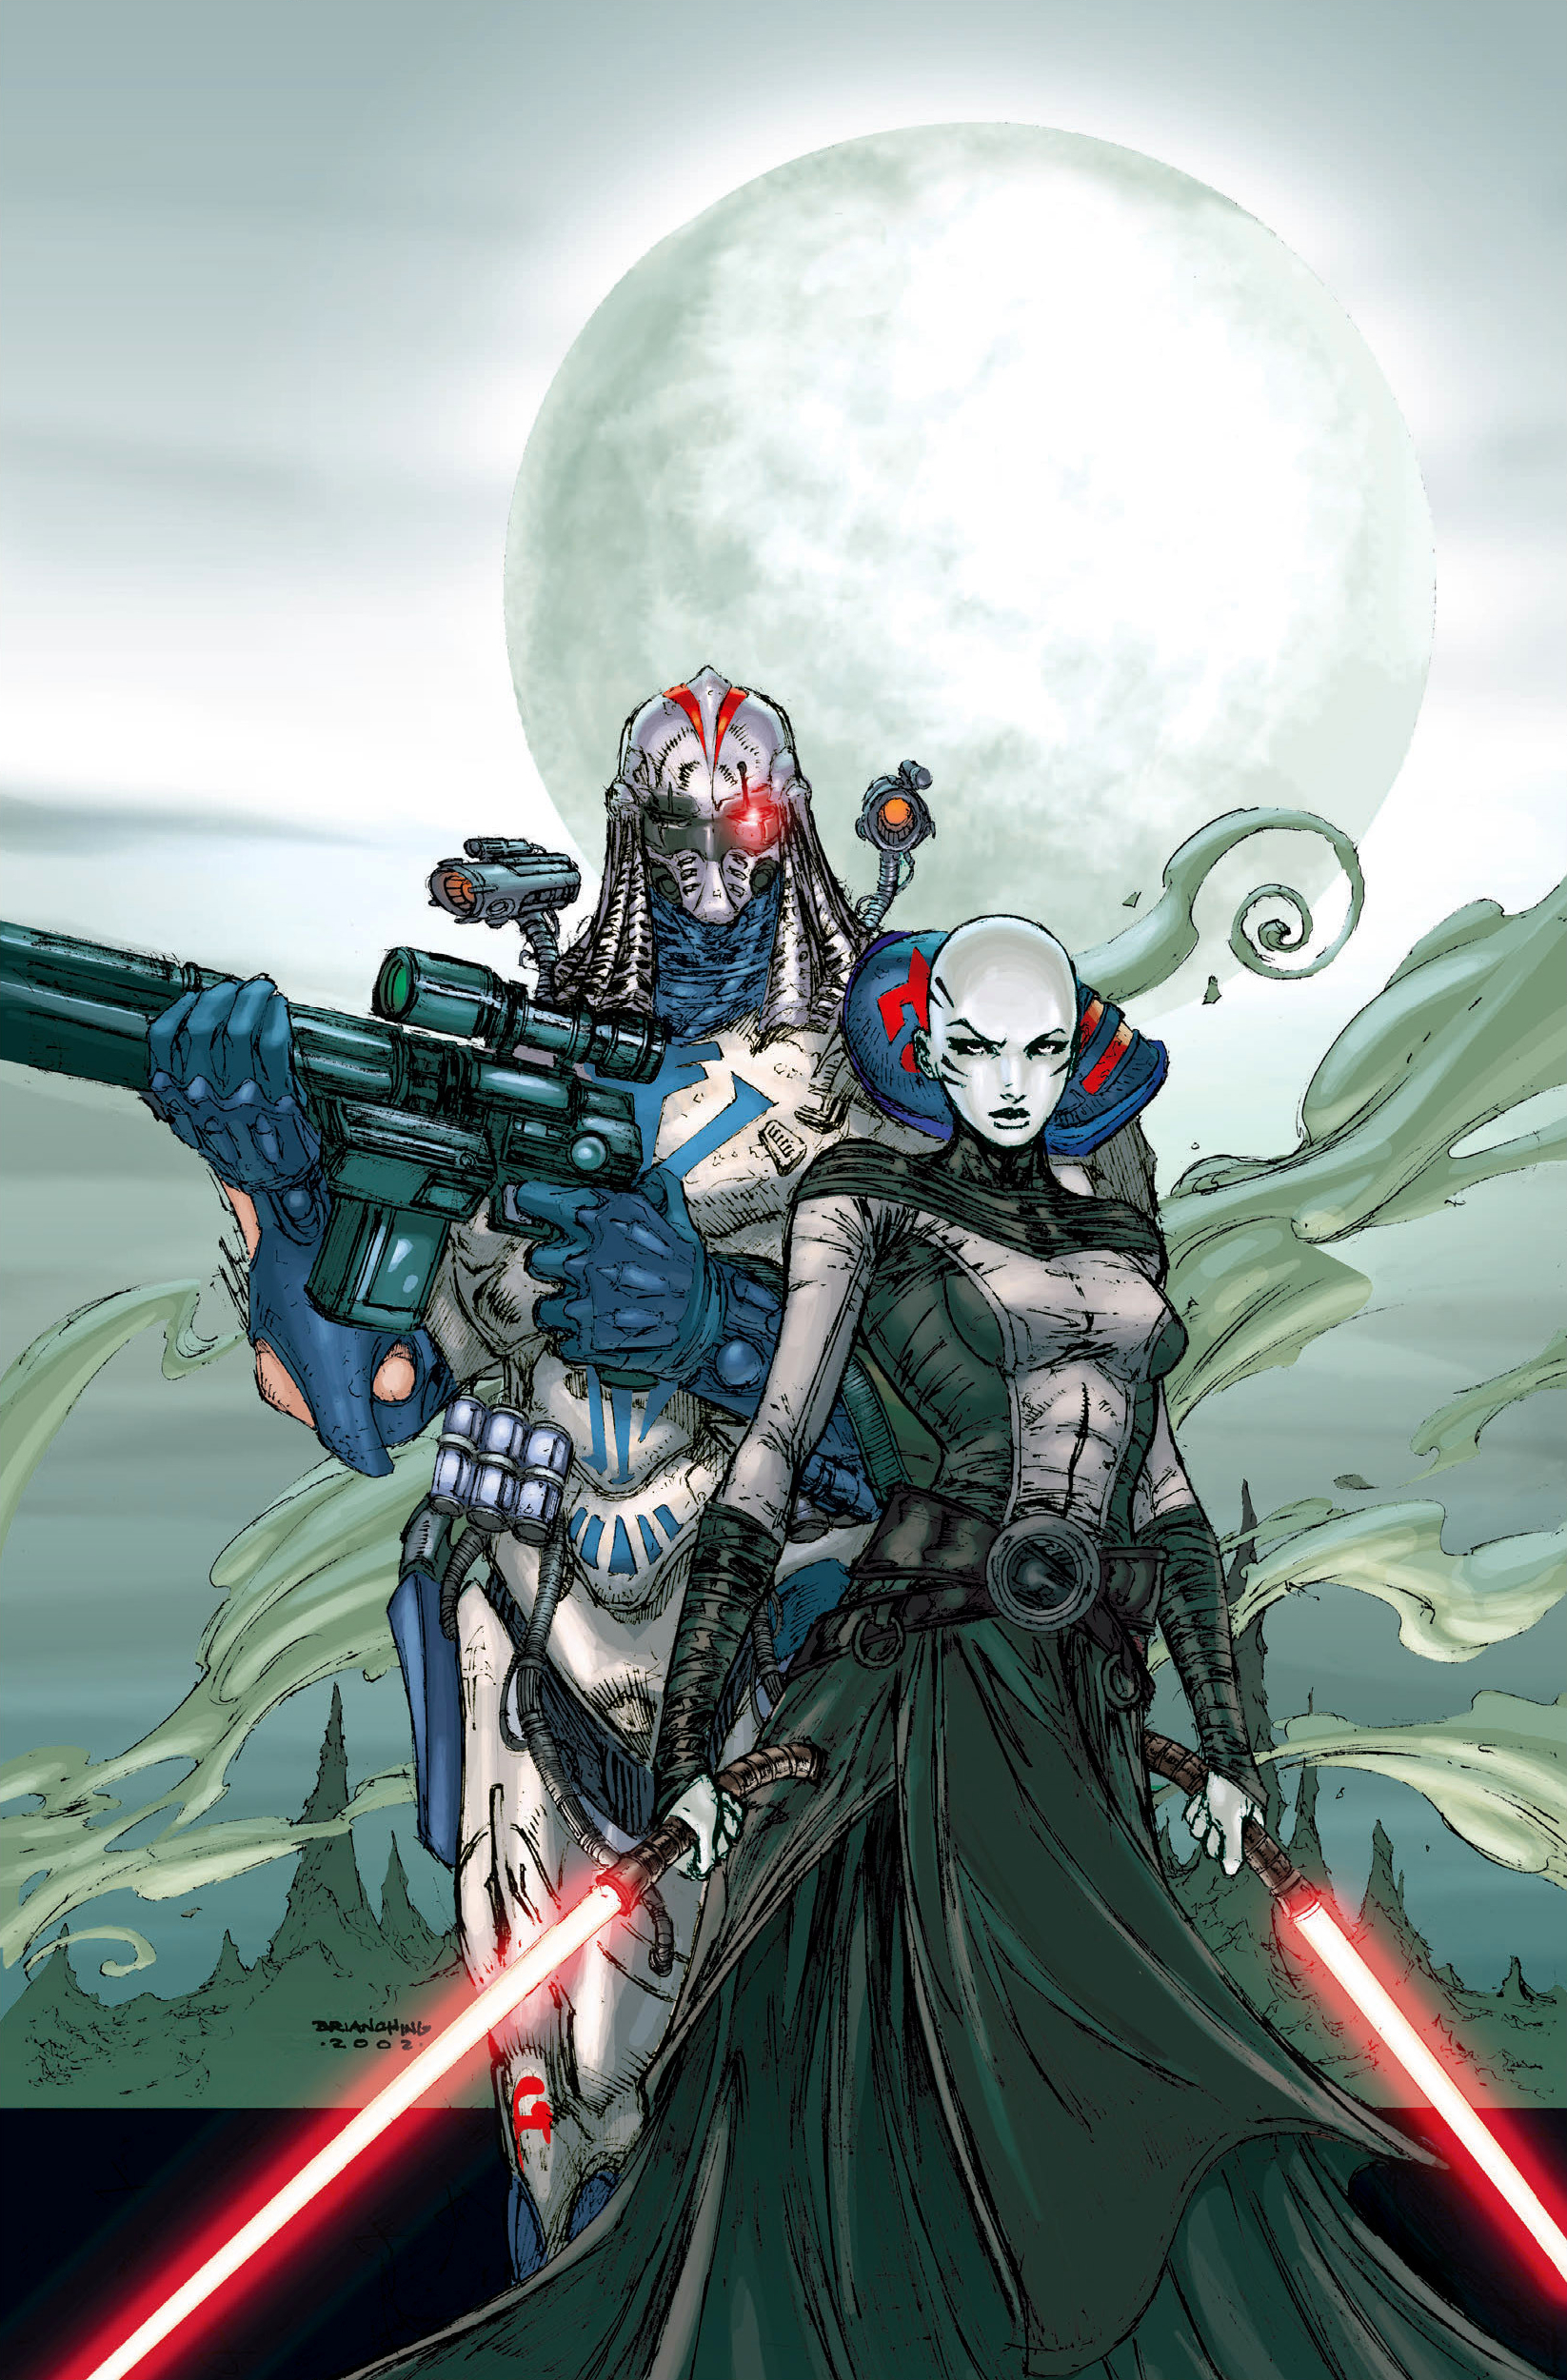 The first appearance of Durge and Asajj Ventress during the clone wars.